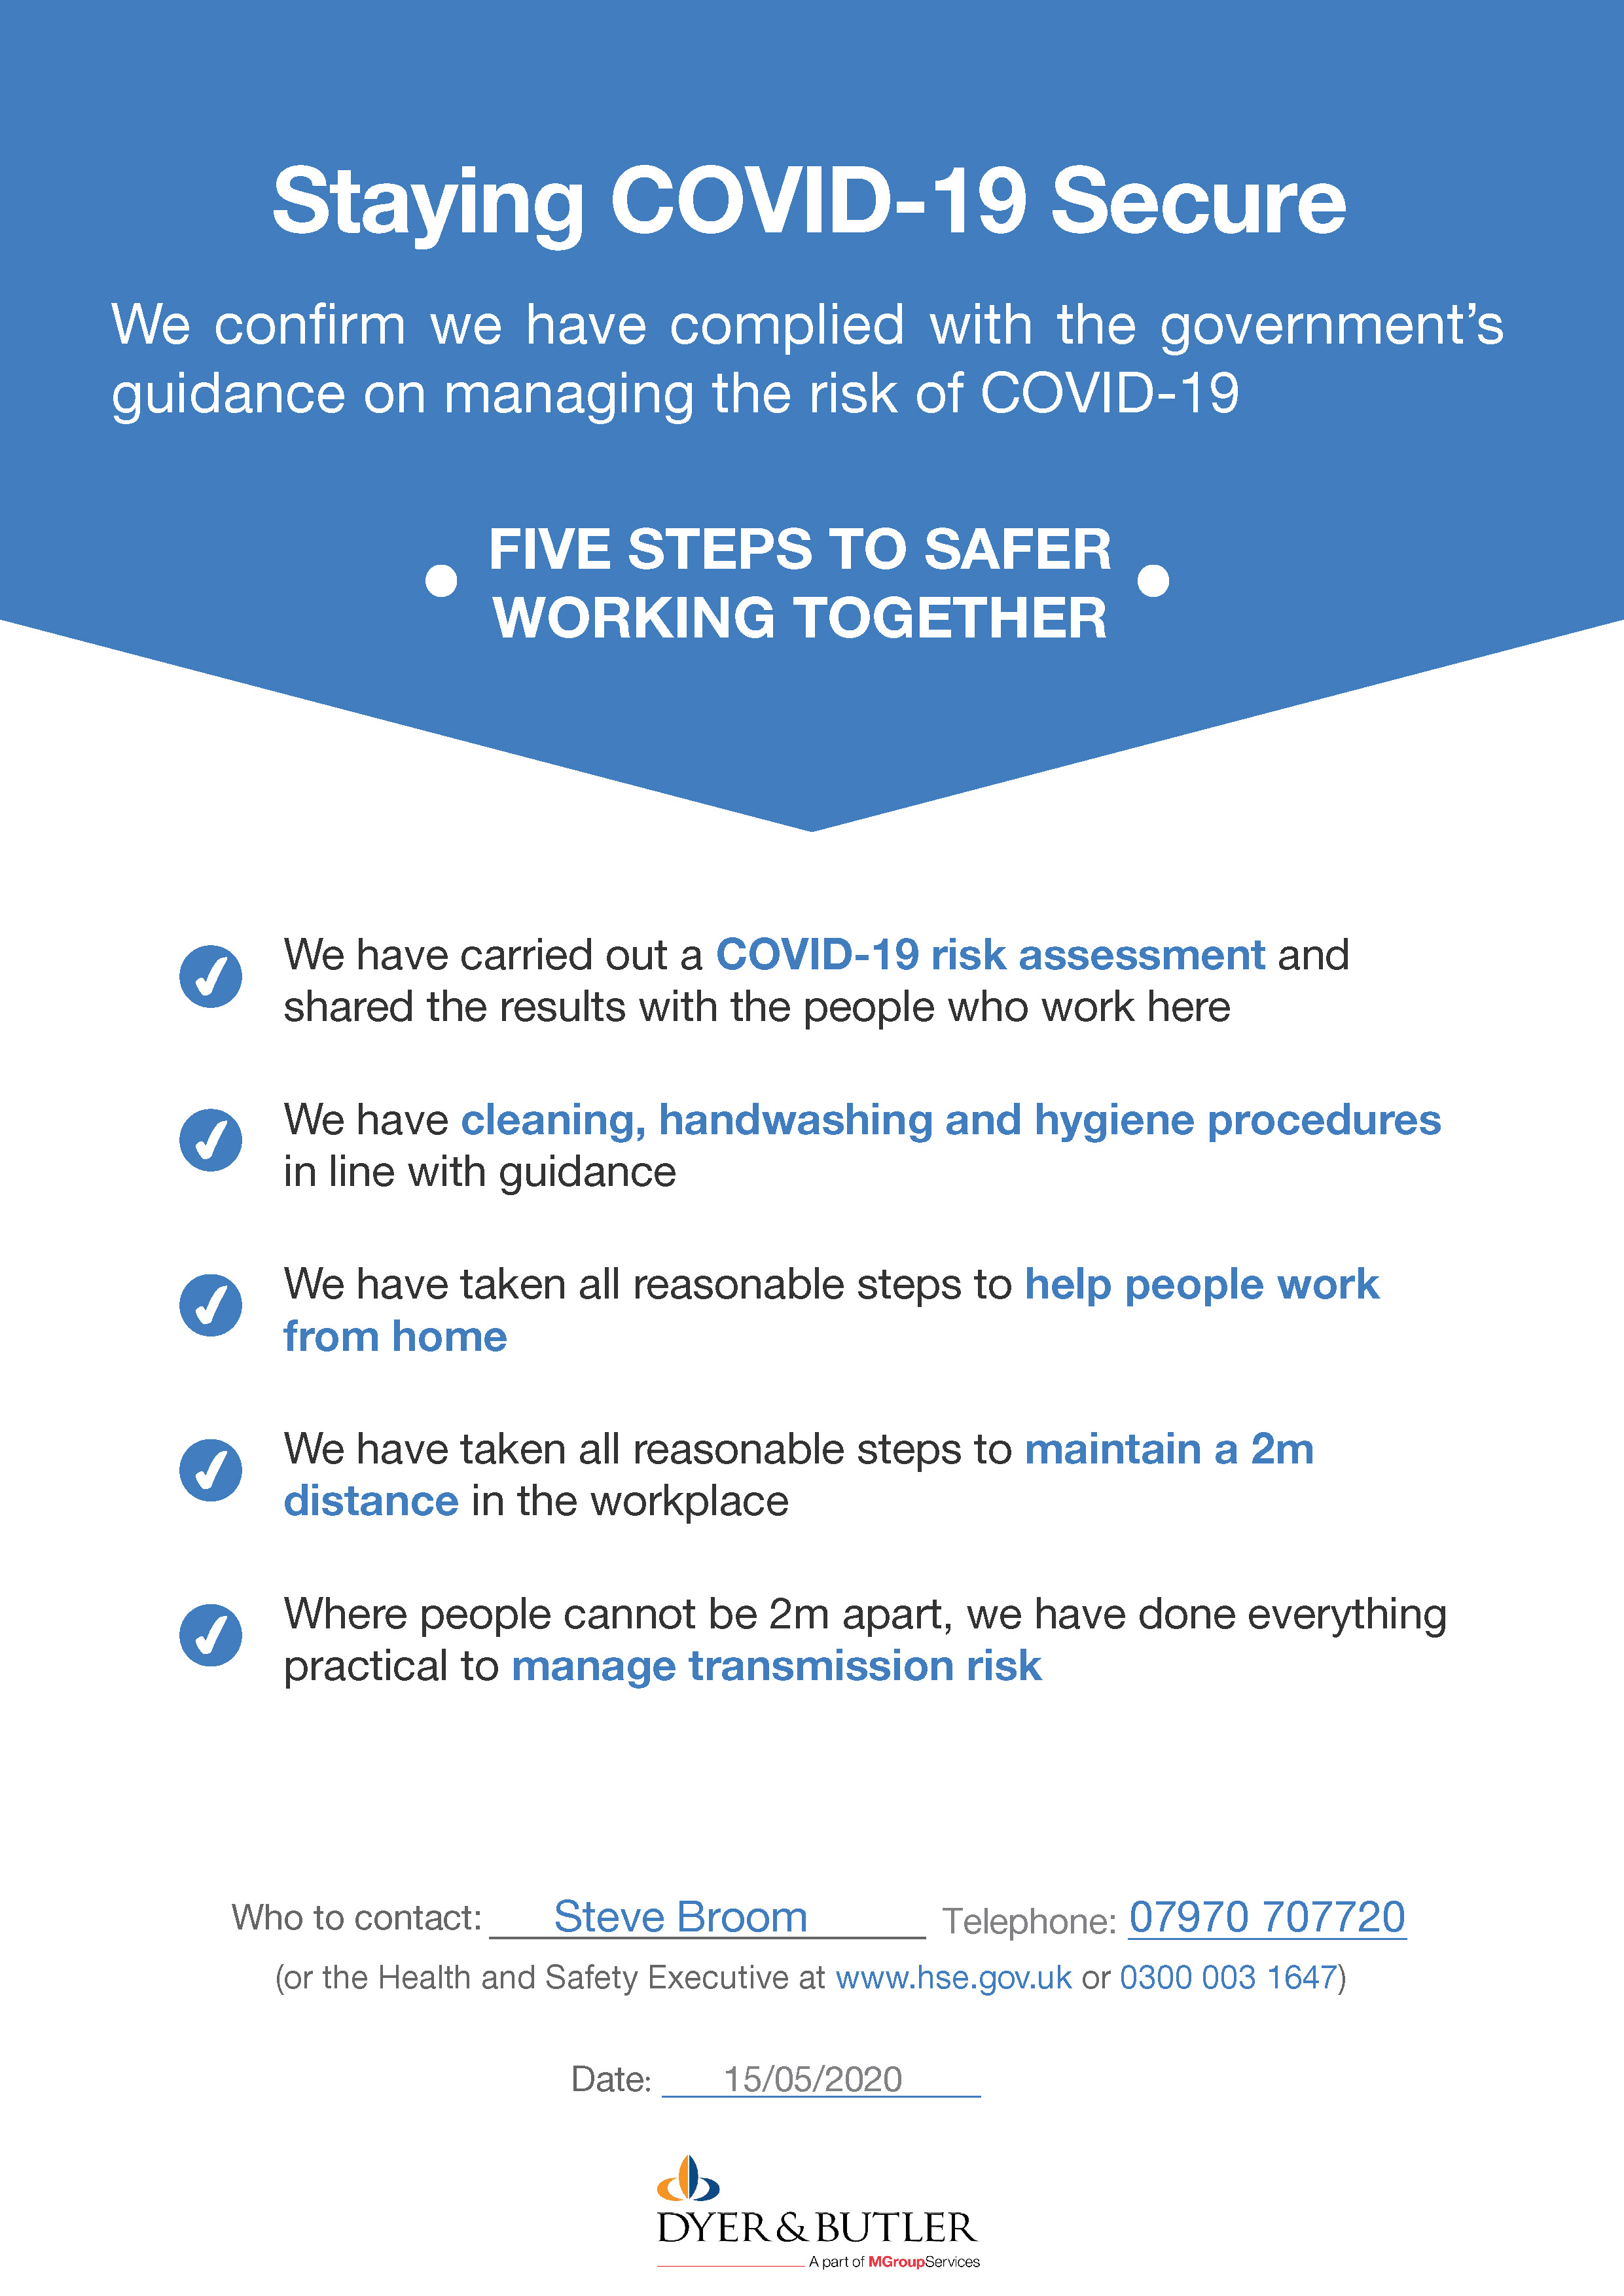 Covid 19 Risk Assessment Statement If you have an immigration related problem or question, you can have a free assessment with a member of our assessments team. covid 19 risk assessment statement